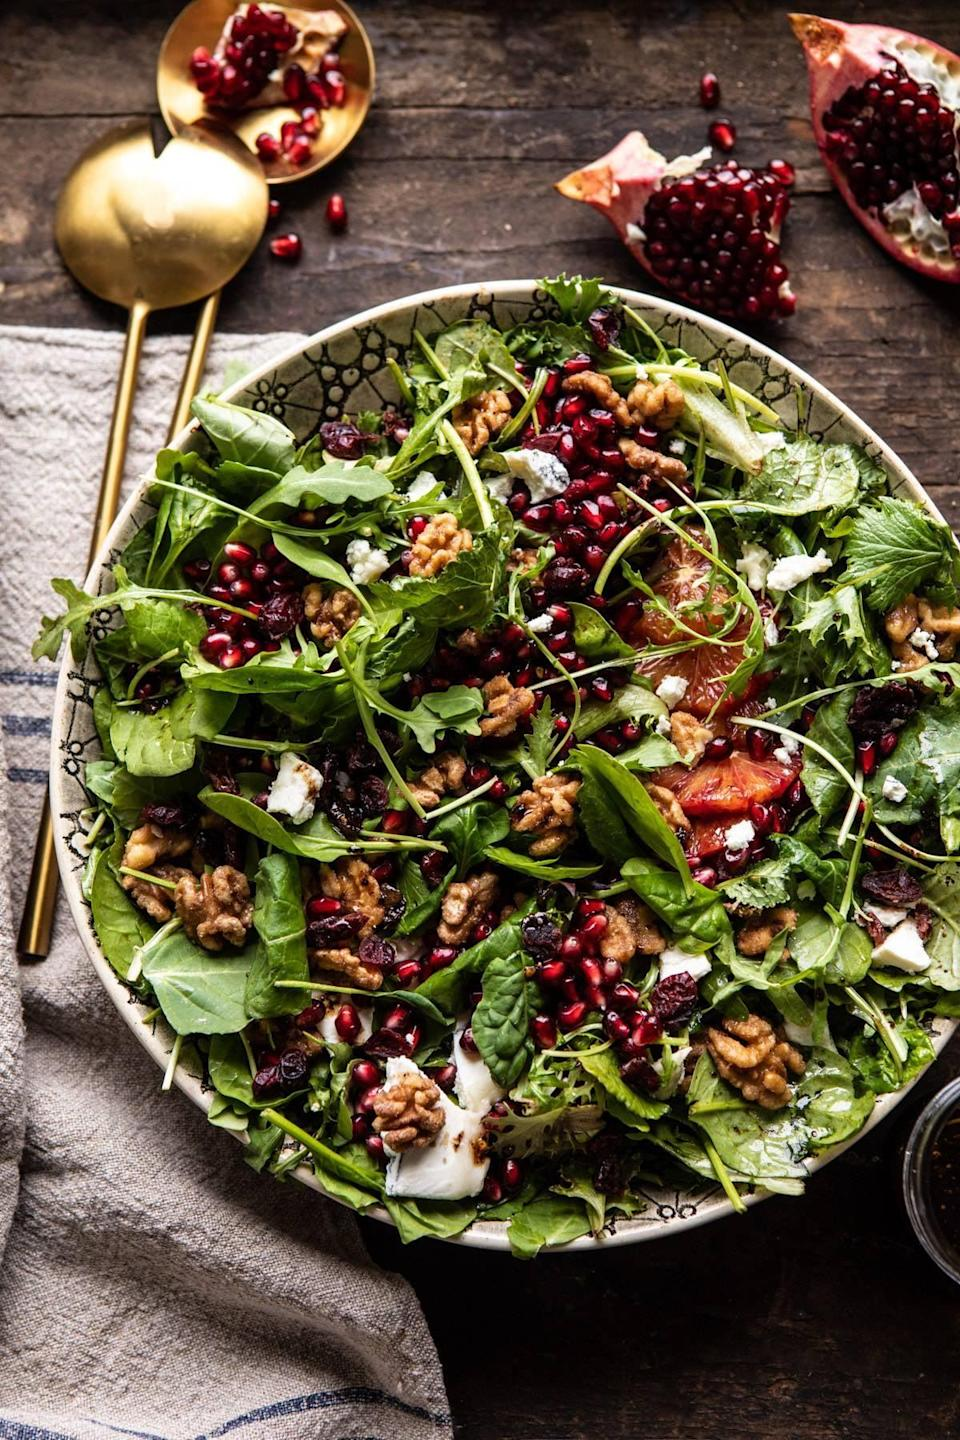 """<p>If you want to have a lighter dinner, then this salad is calling your name. With a balsamic fig vinaigrette, mixed greens, juicy pomegranates, maple roasted walnuts, and crumbled goat cheese, it tastes as good as it sounds. </p> <p><strong>Get the recipe:</strong> <a href=""""https://www.halfbakedharvest.com/winter-salad-maple-candied-walnuts-balsamic-fig-dressing-big-giveaway/"""" class=""""link rapid-noclick-resp"""" rel=""""nofollow noopener"""" target=""""_blank"""" data-ylk=""""slk:winter pomegranate salad with maple candied walnuts"""">winter pomegranate salad with maple candied walnuts</a></p>"""